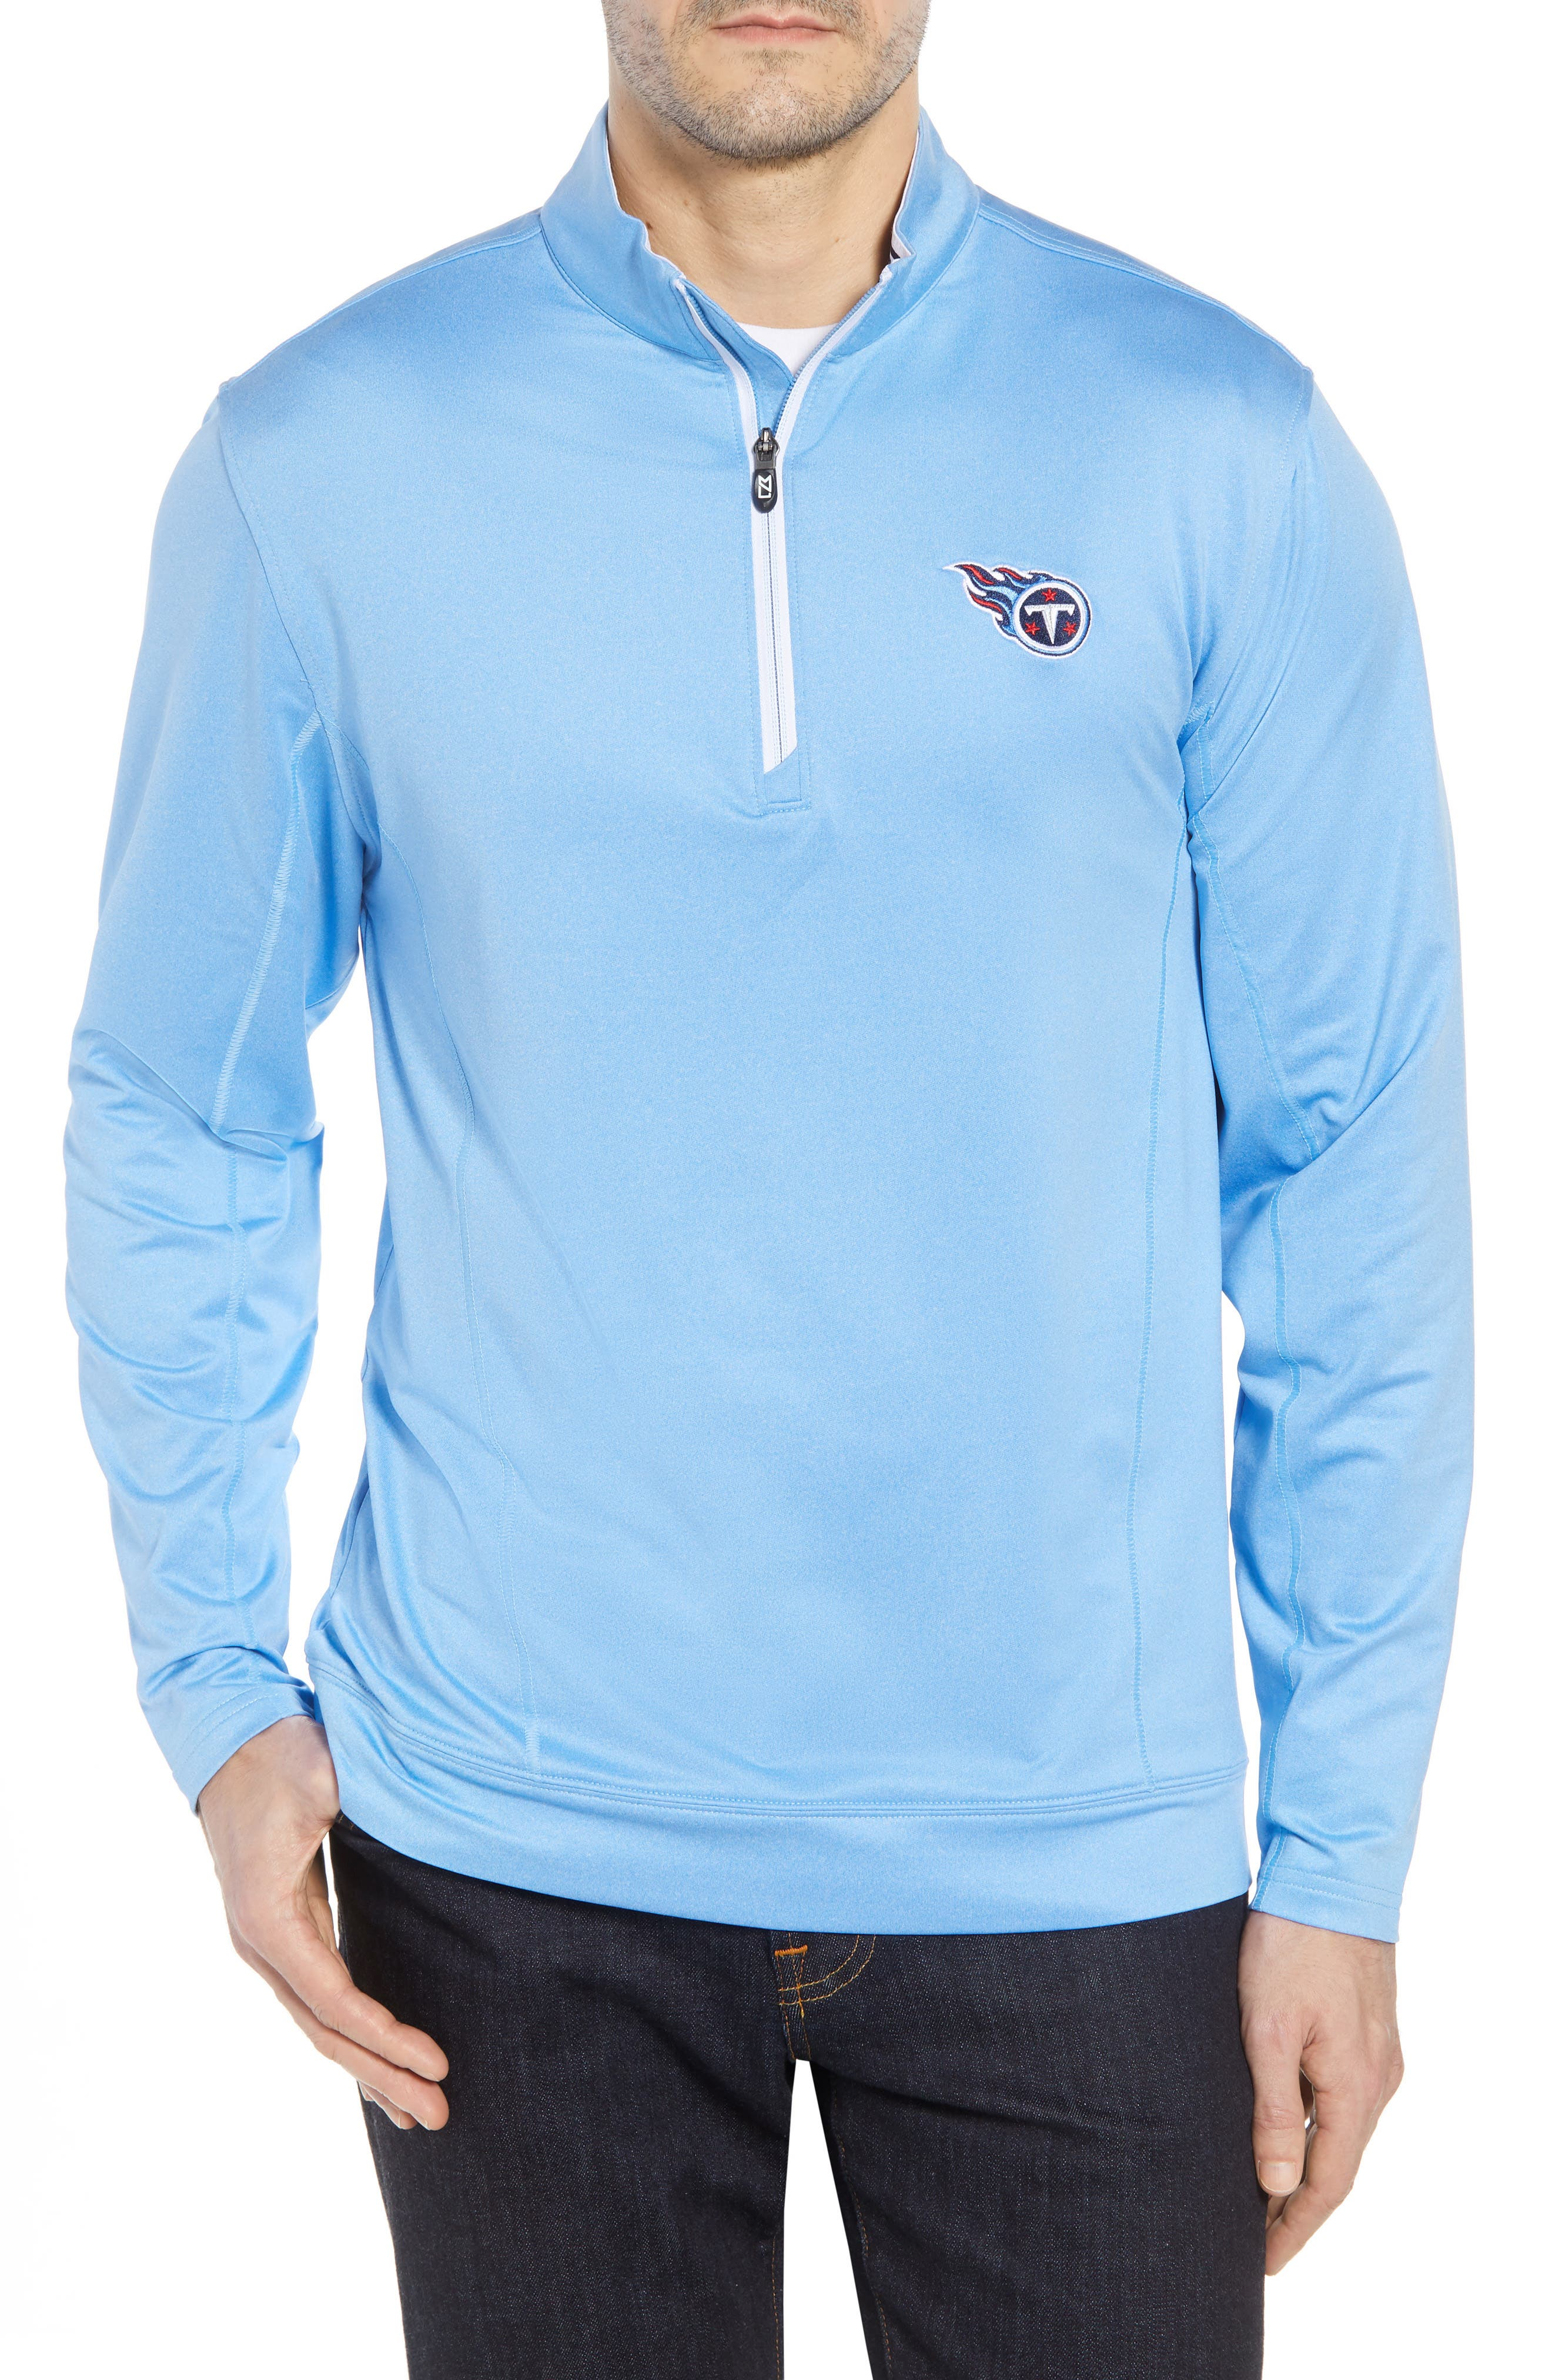 Endurance Tennessee Titans Regular Fit Pullover,                             Main thumbnail 1, color,                             ATLAS HEATHER